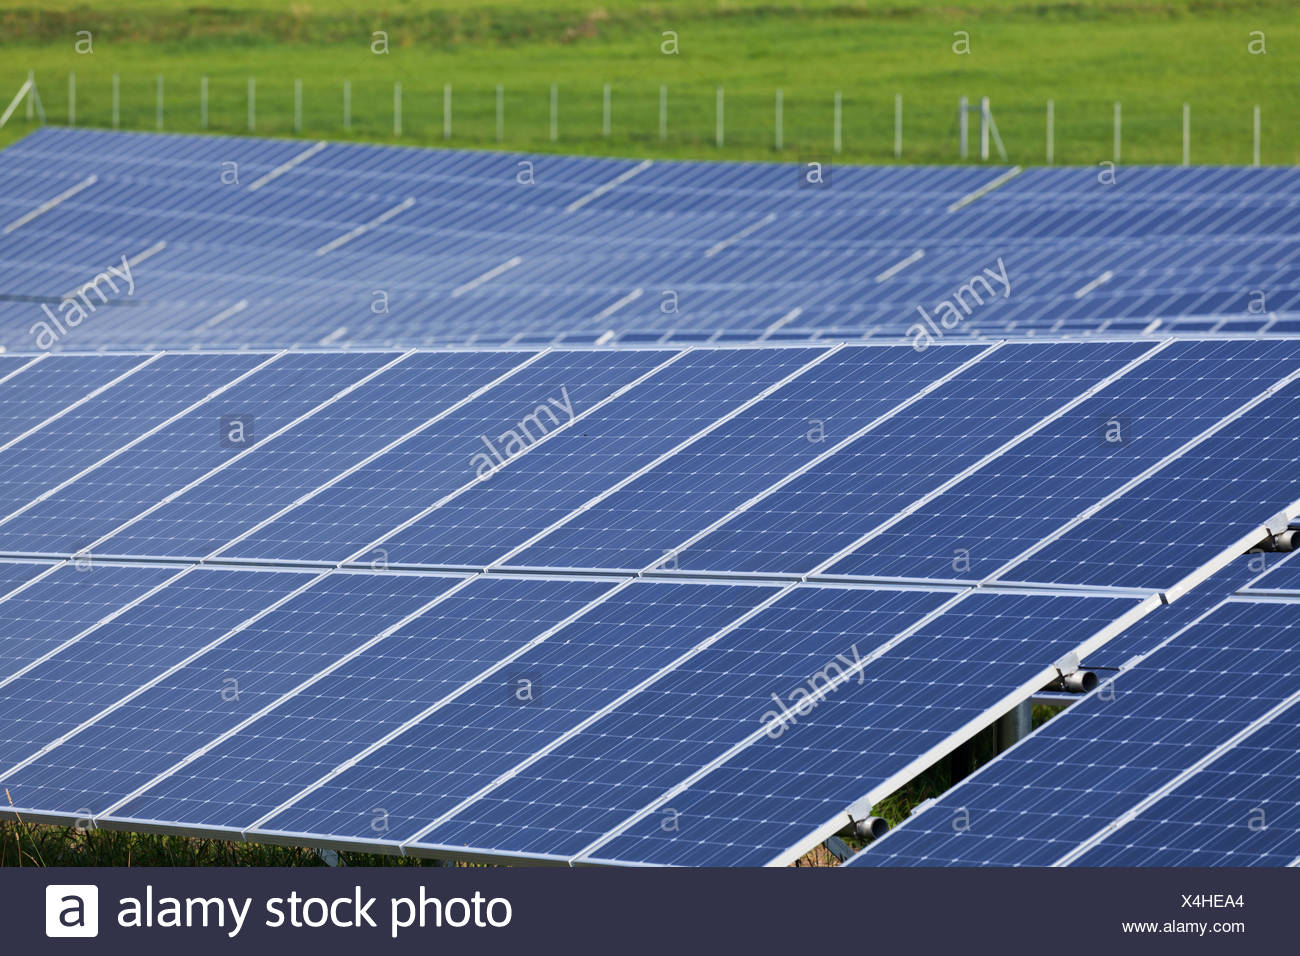 solar,photovoltaic system - Stock Image